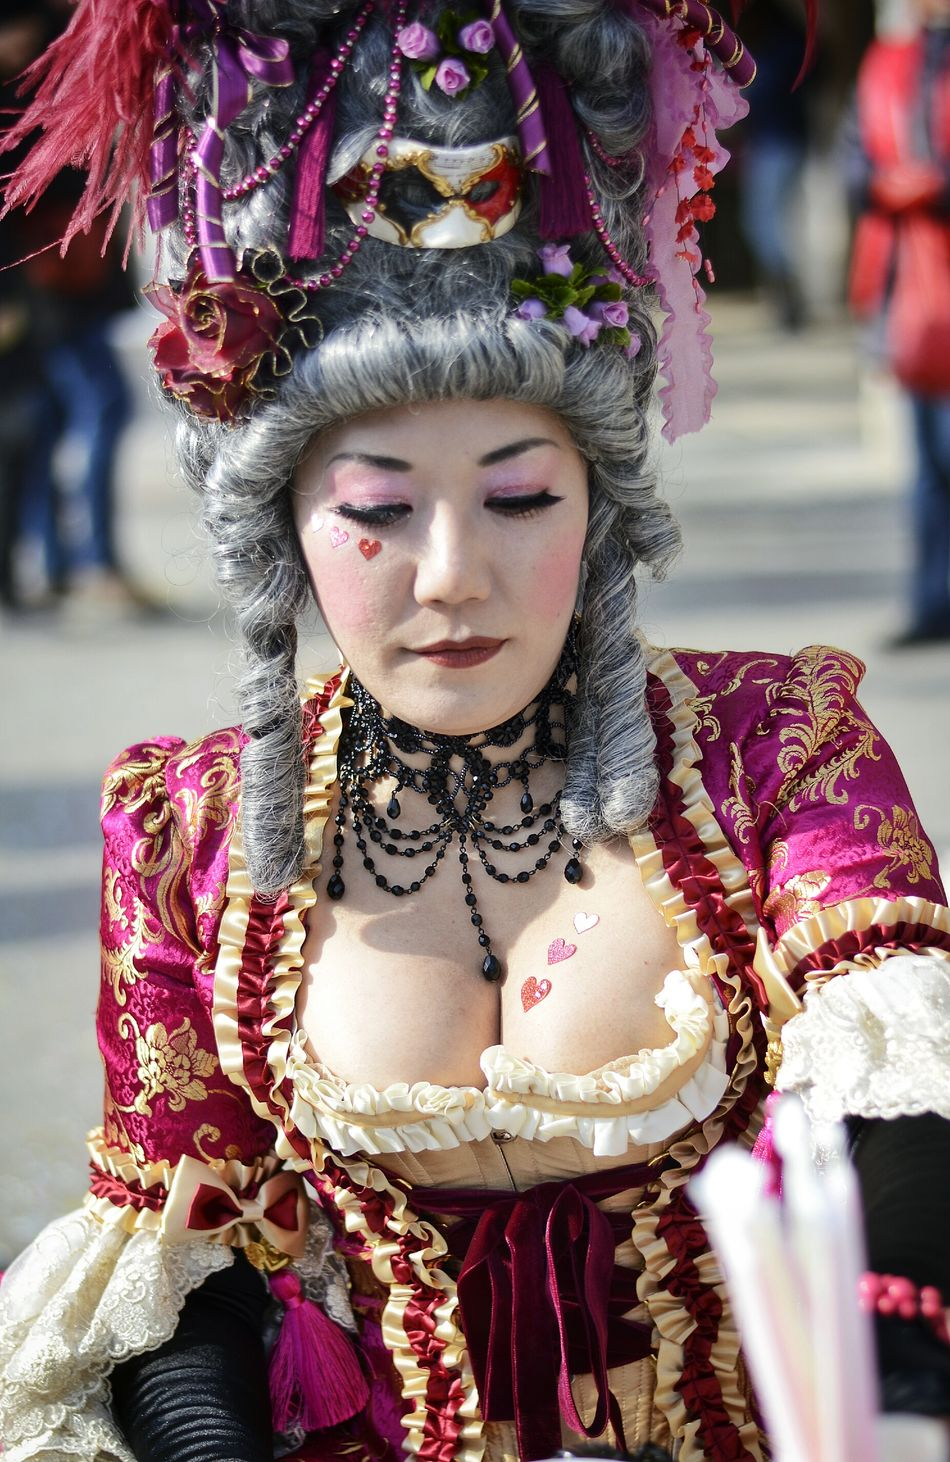 Colors Of Carnival Pink Heart Pink Lady Venice Venice Carnival Streetphotography Street Photography Streetphoto_color Street Portrait Curvygirls Carnival The Portraitist - 2016 EyeEm Awards The Street Photographer - 2016 EyeEm Awards People And Places Women Around The World